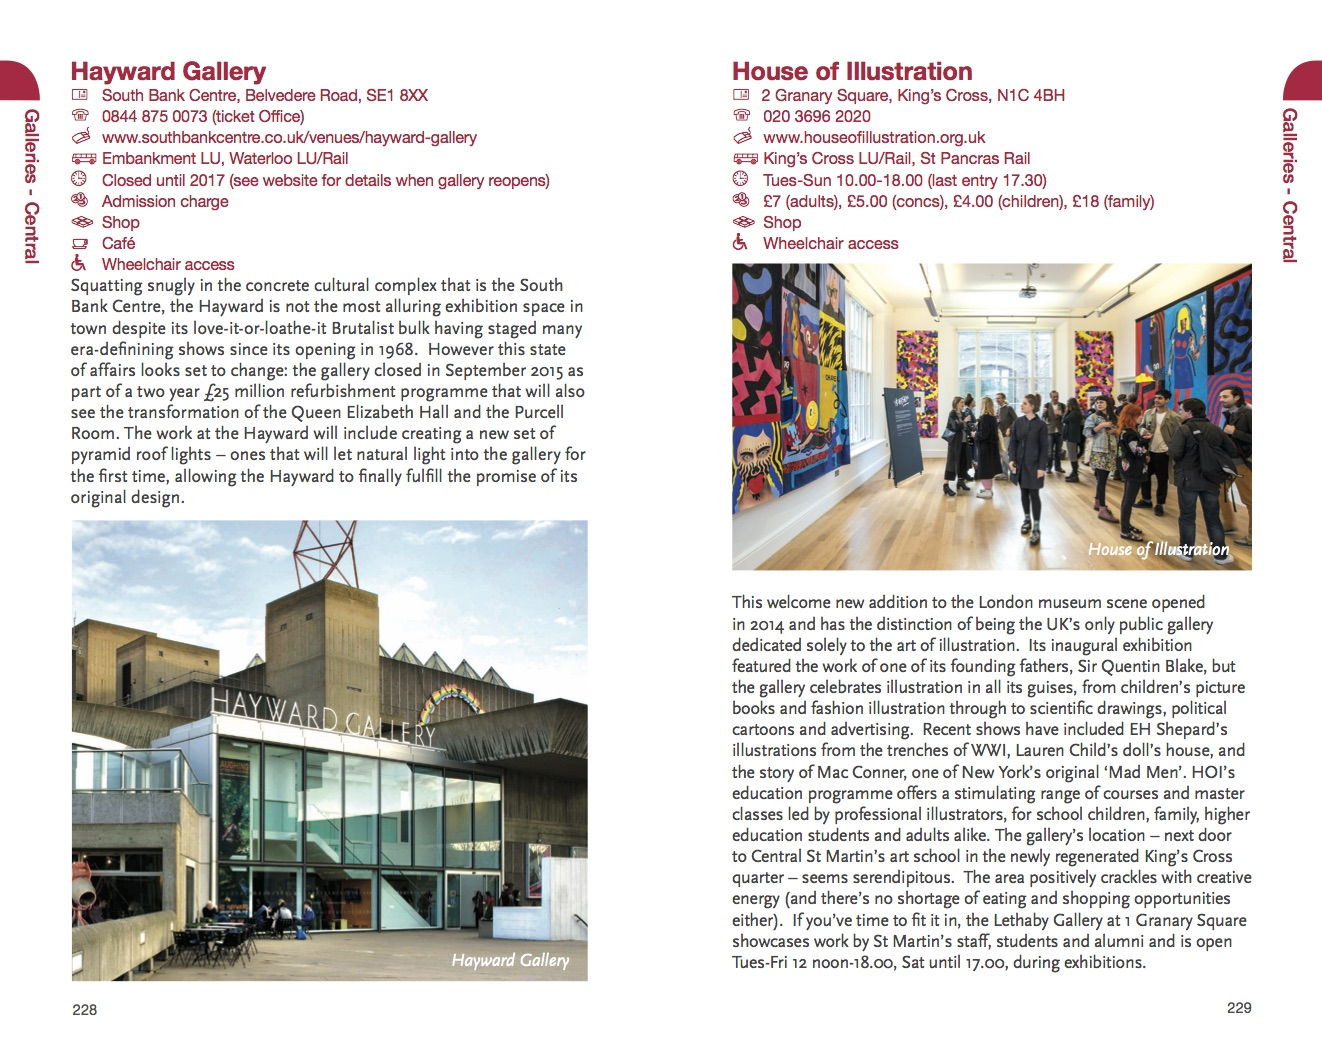 Museums-and-galleries-of-London-hayward-gallery-entry